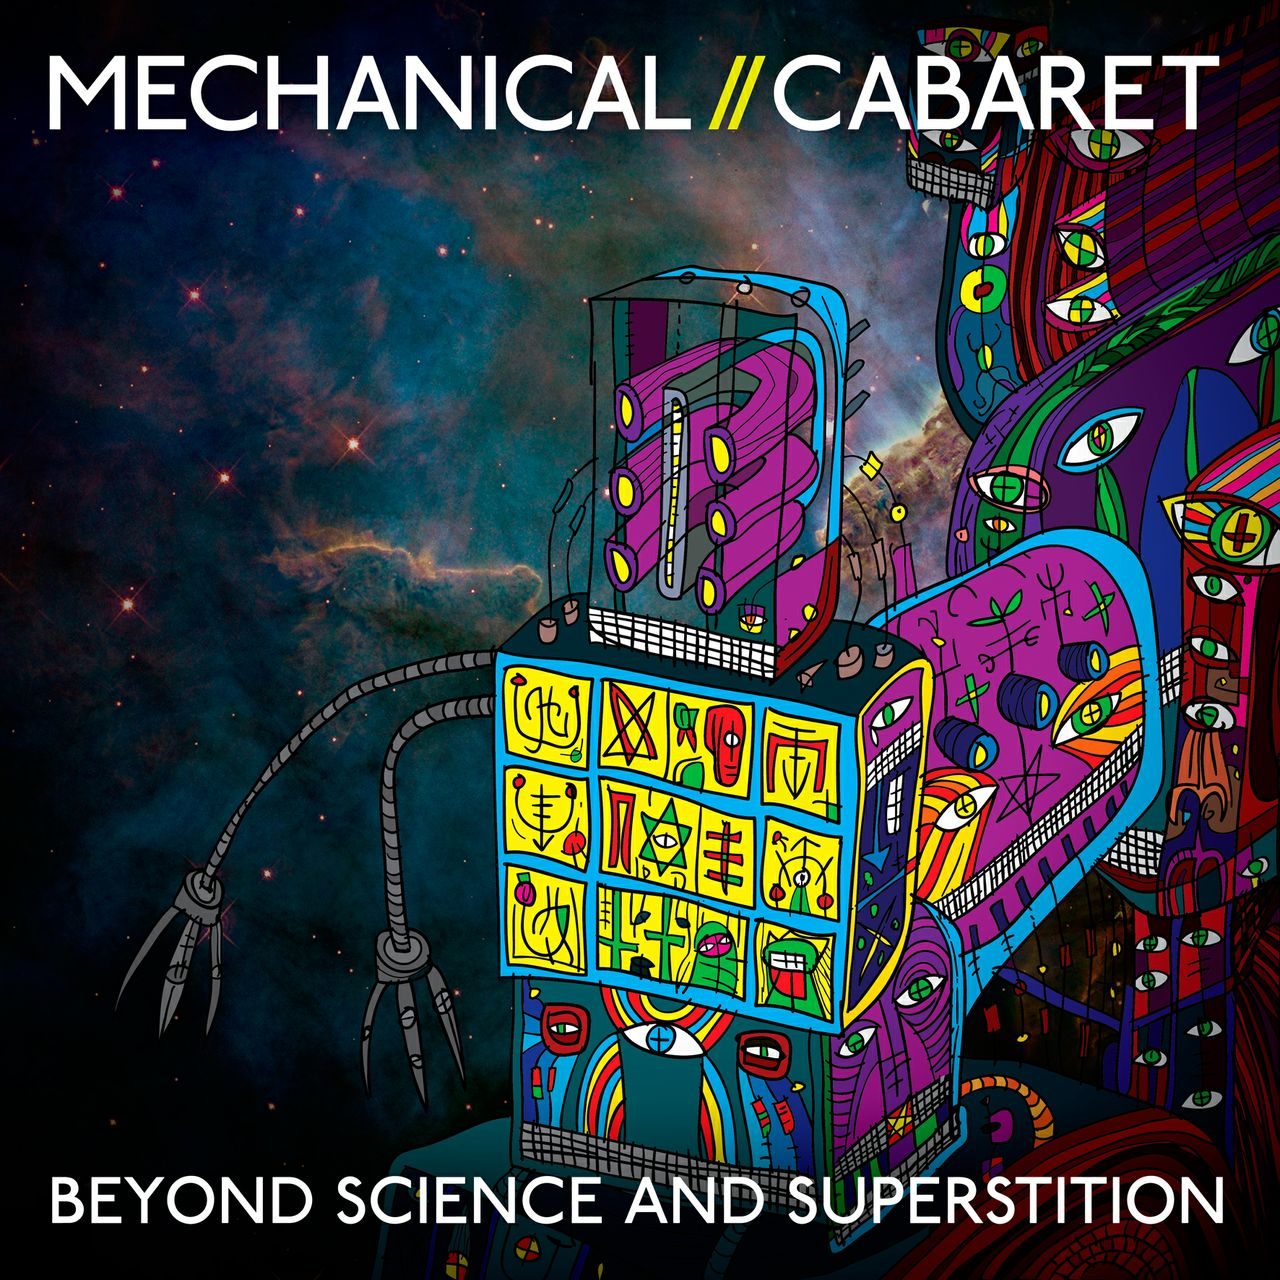 Mechanical Cabaret - Beyond Science And Superstition - Album - 10 tracks